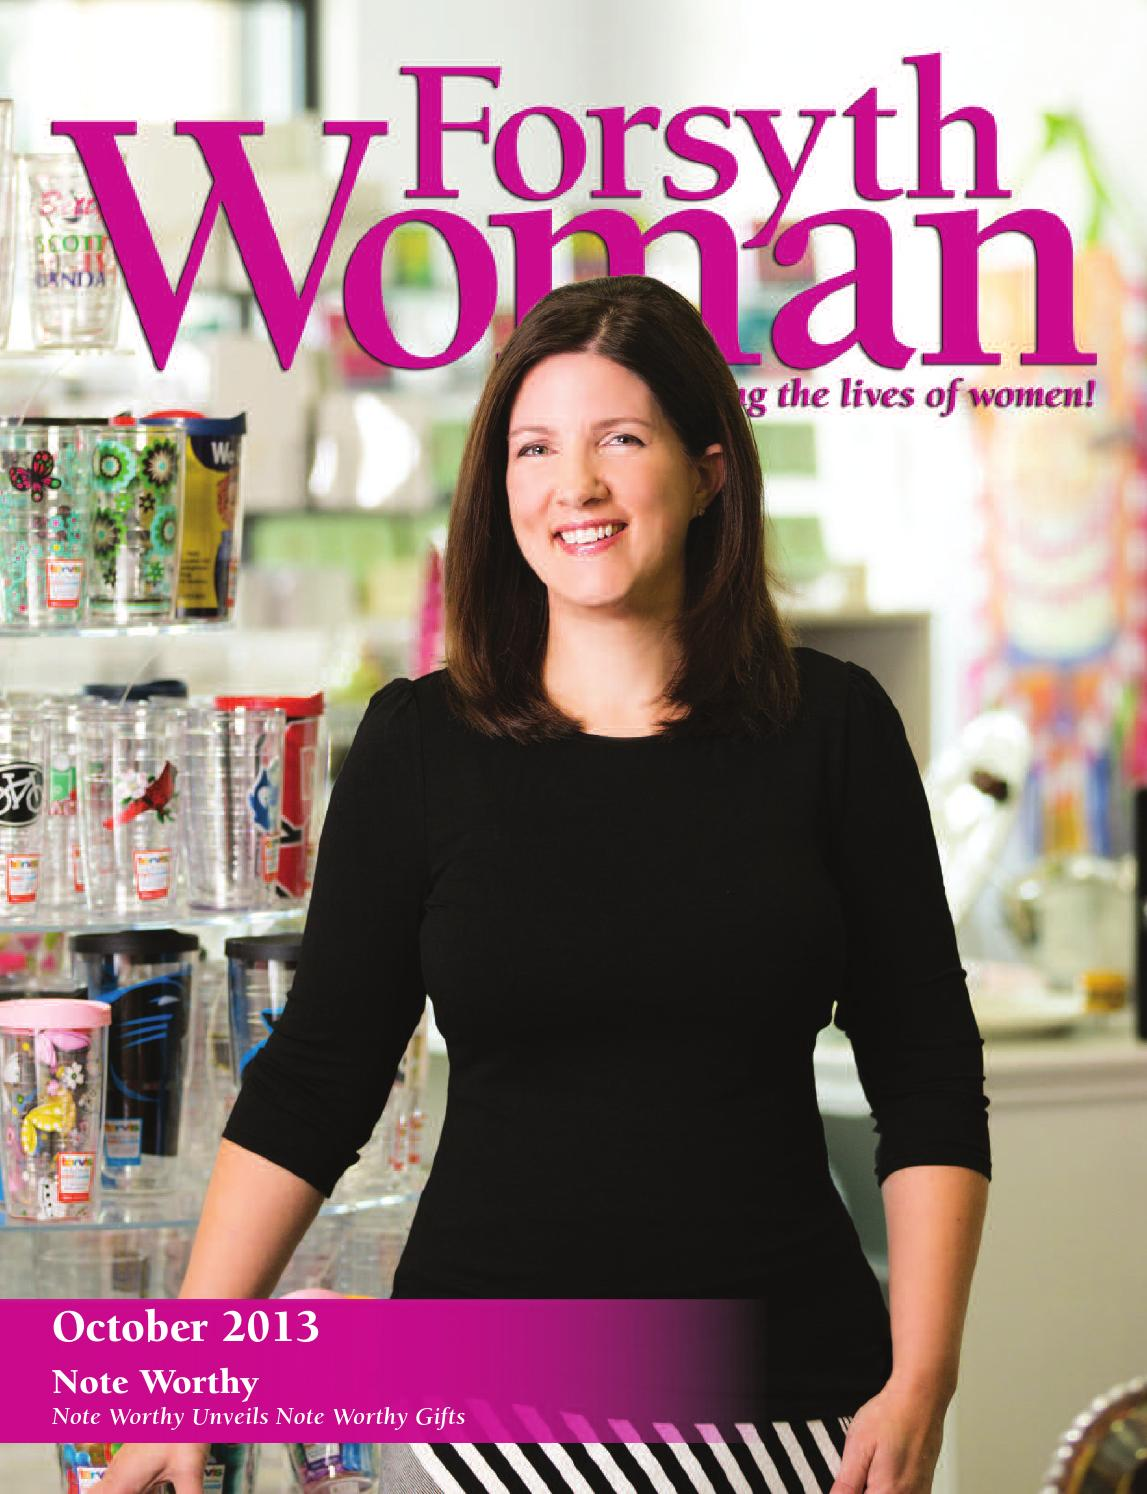 forsyth woman october 2013 by forsyth mags issuu